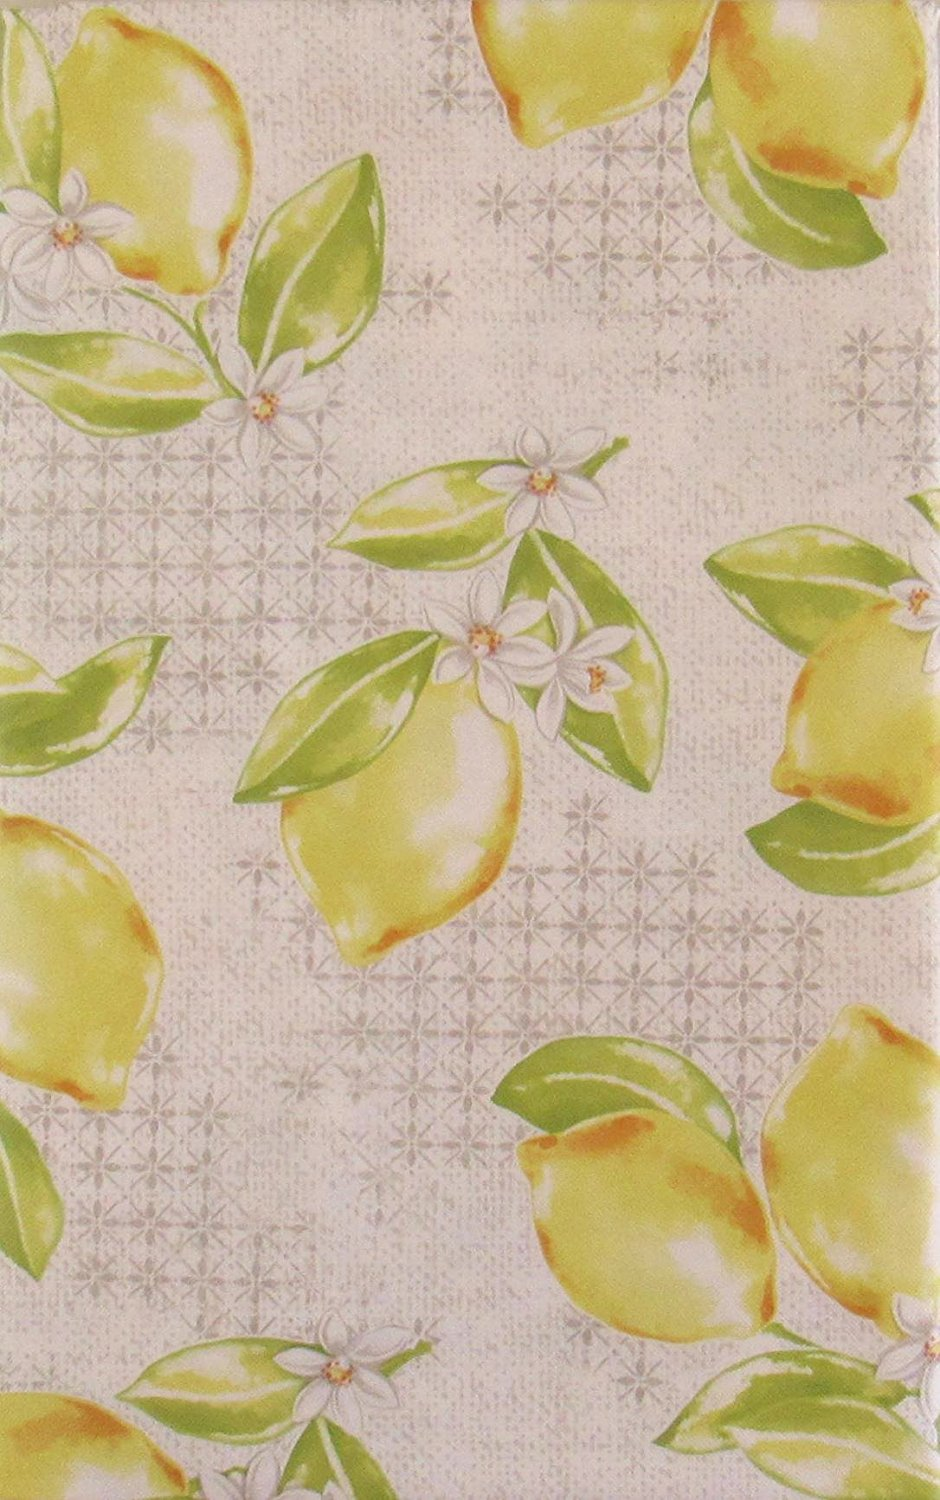 Lemons vinyl flannel back tablecloth 60 inch Round